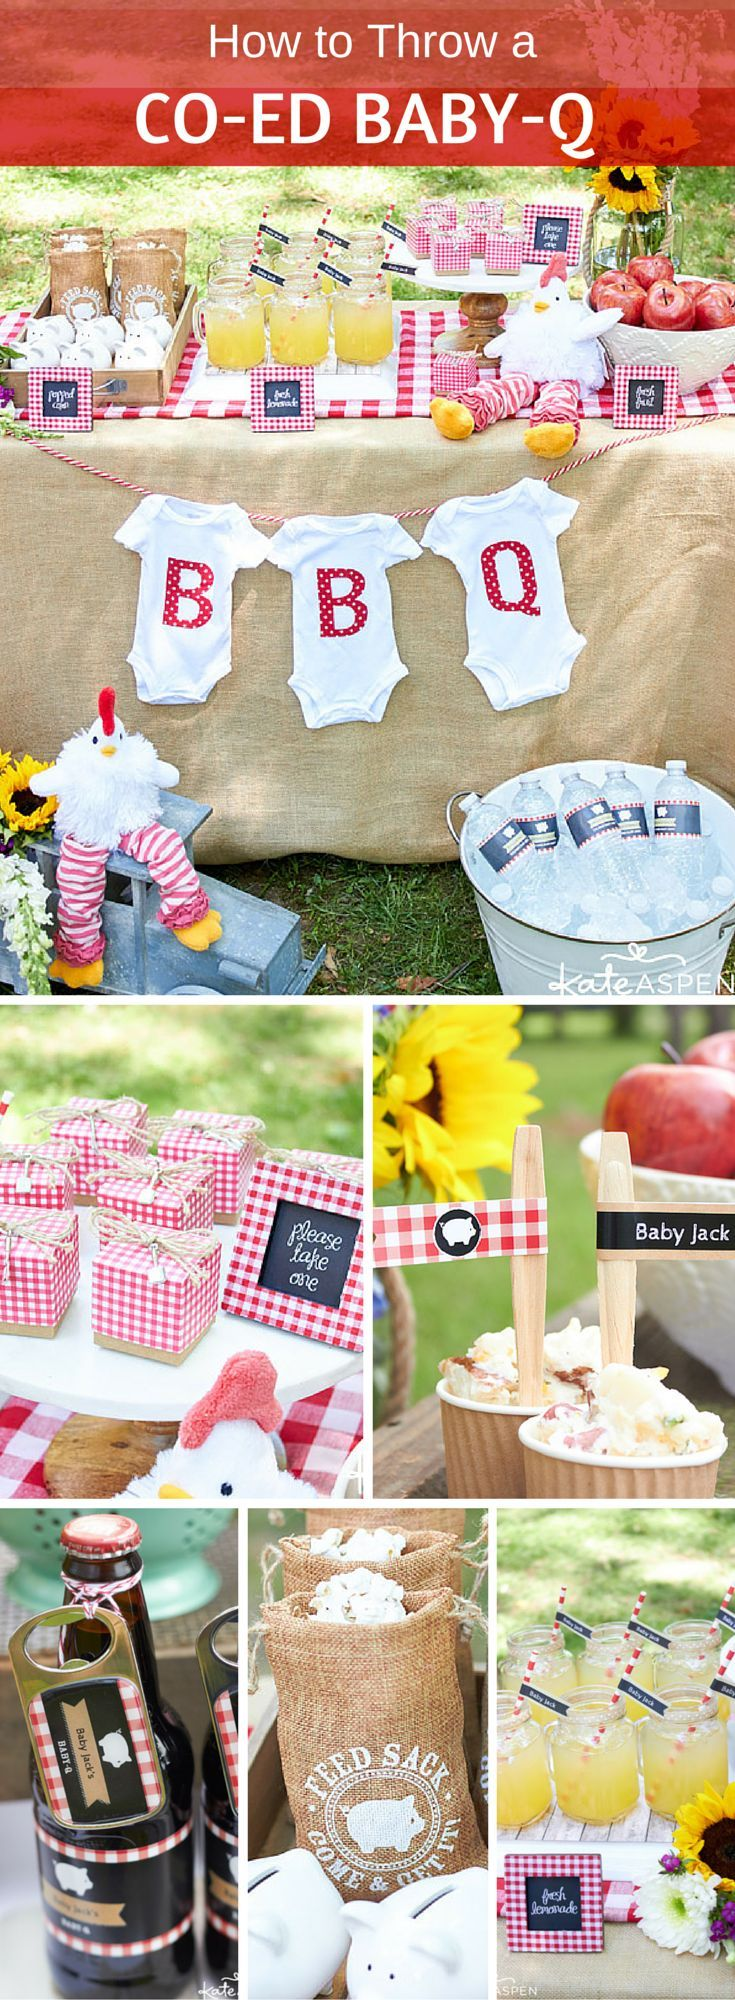 A Baby-Q is an adorable gender-neutral baby shower theme, and it's